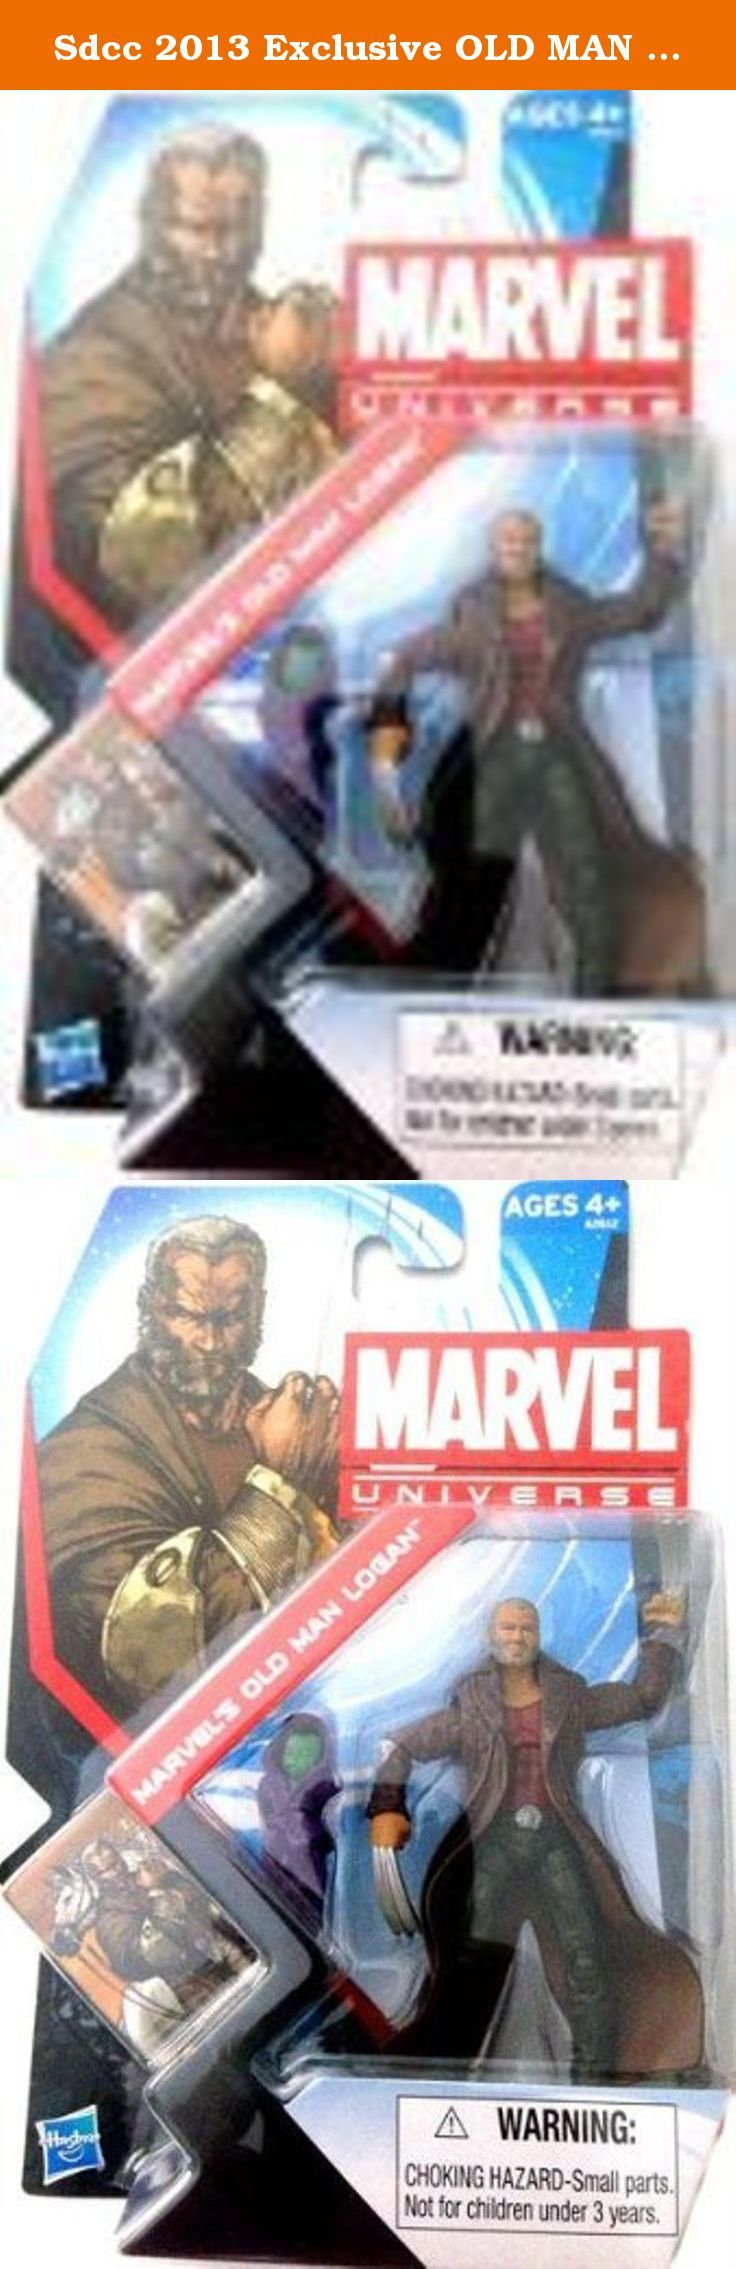 Sdcc 2013 Exclusive OLD MAN Logan with Baby Hulk Marvel Universe Wolverine. SDCC Exclusive Old Man Logan with Baby Hulk.